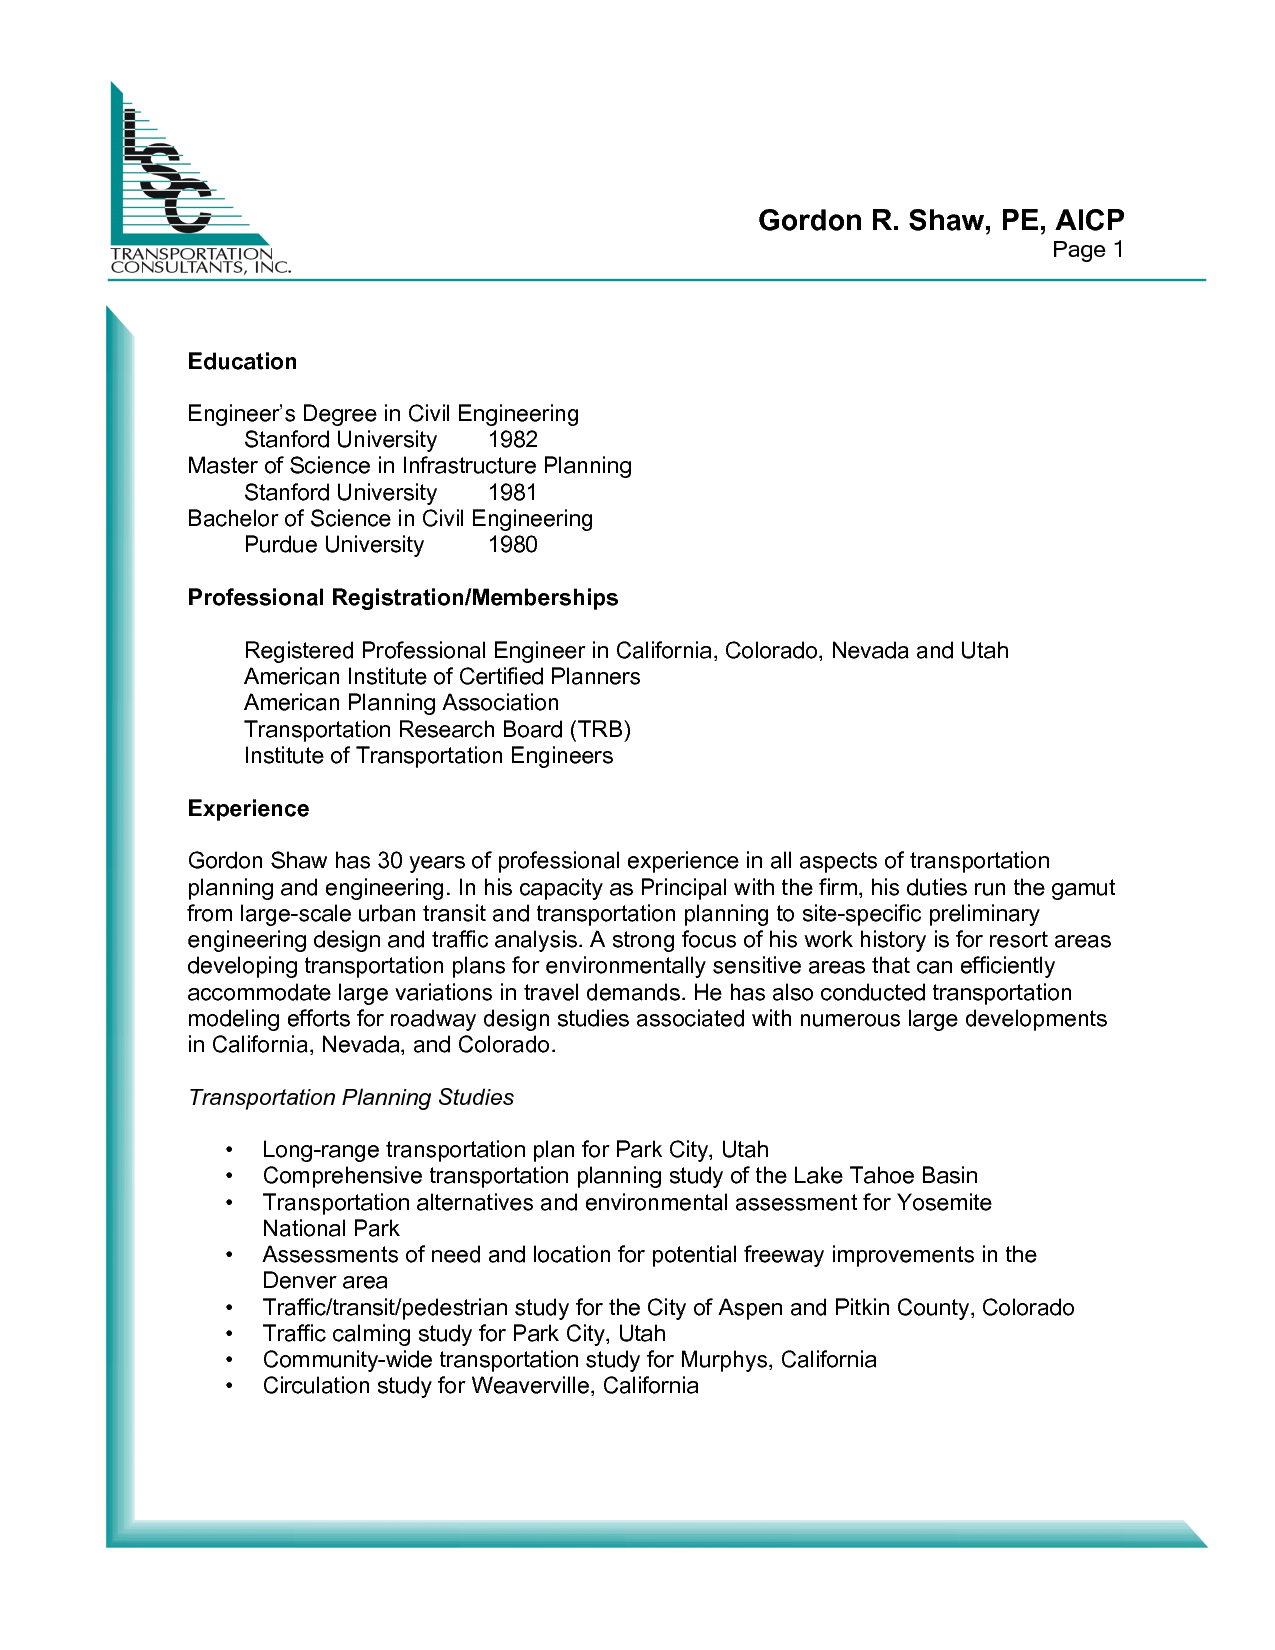 Civil Supervisor Sample Resume Inclusion Assistant For Engineer